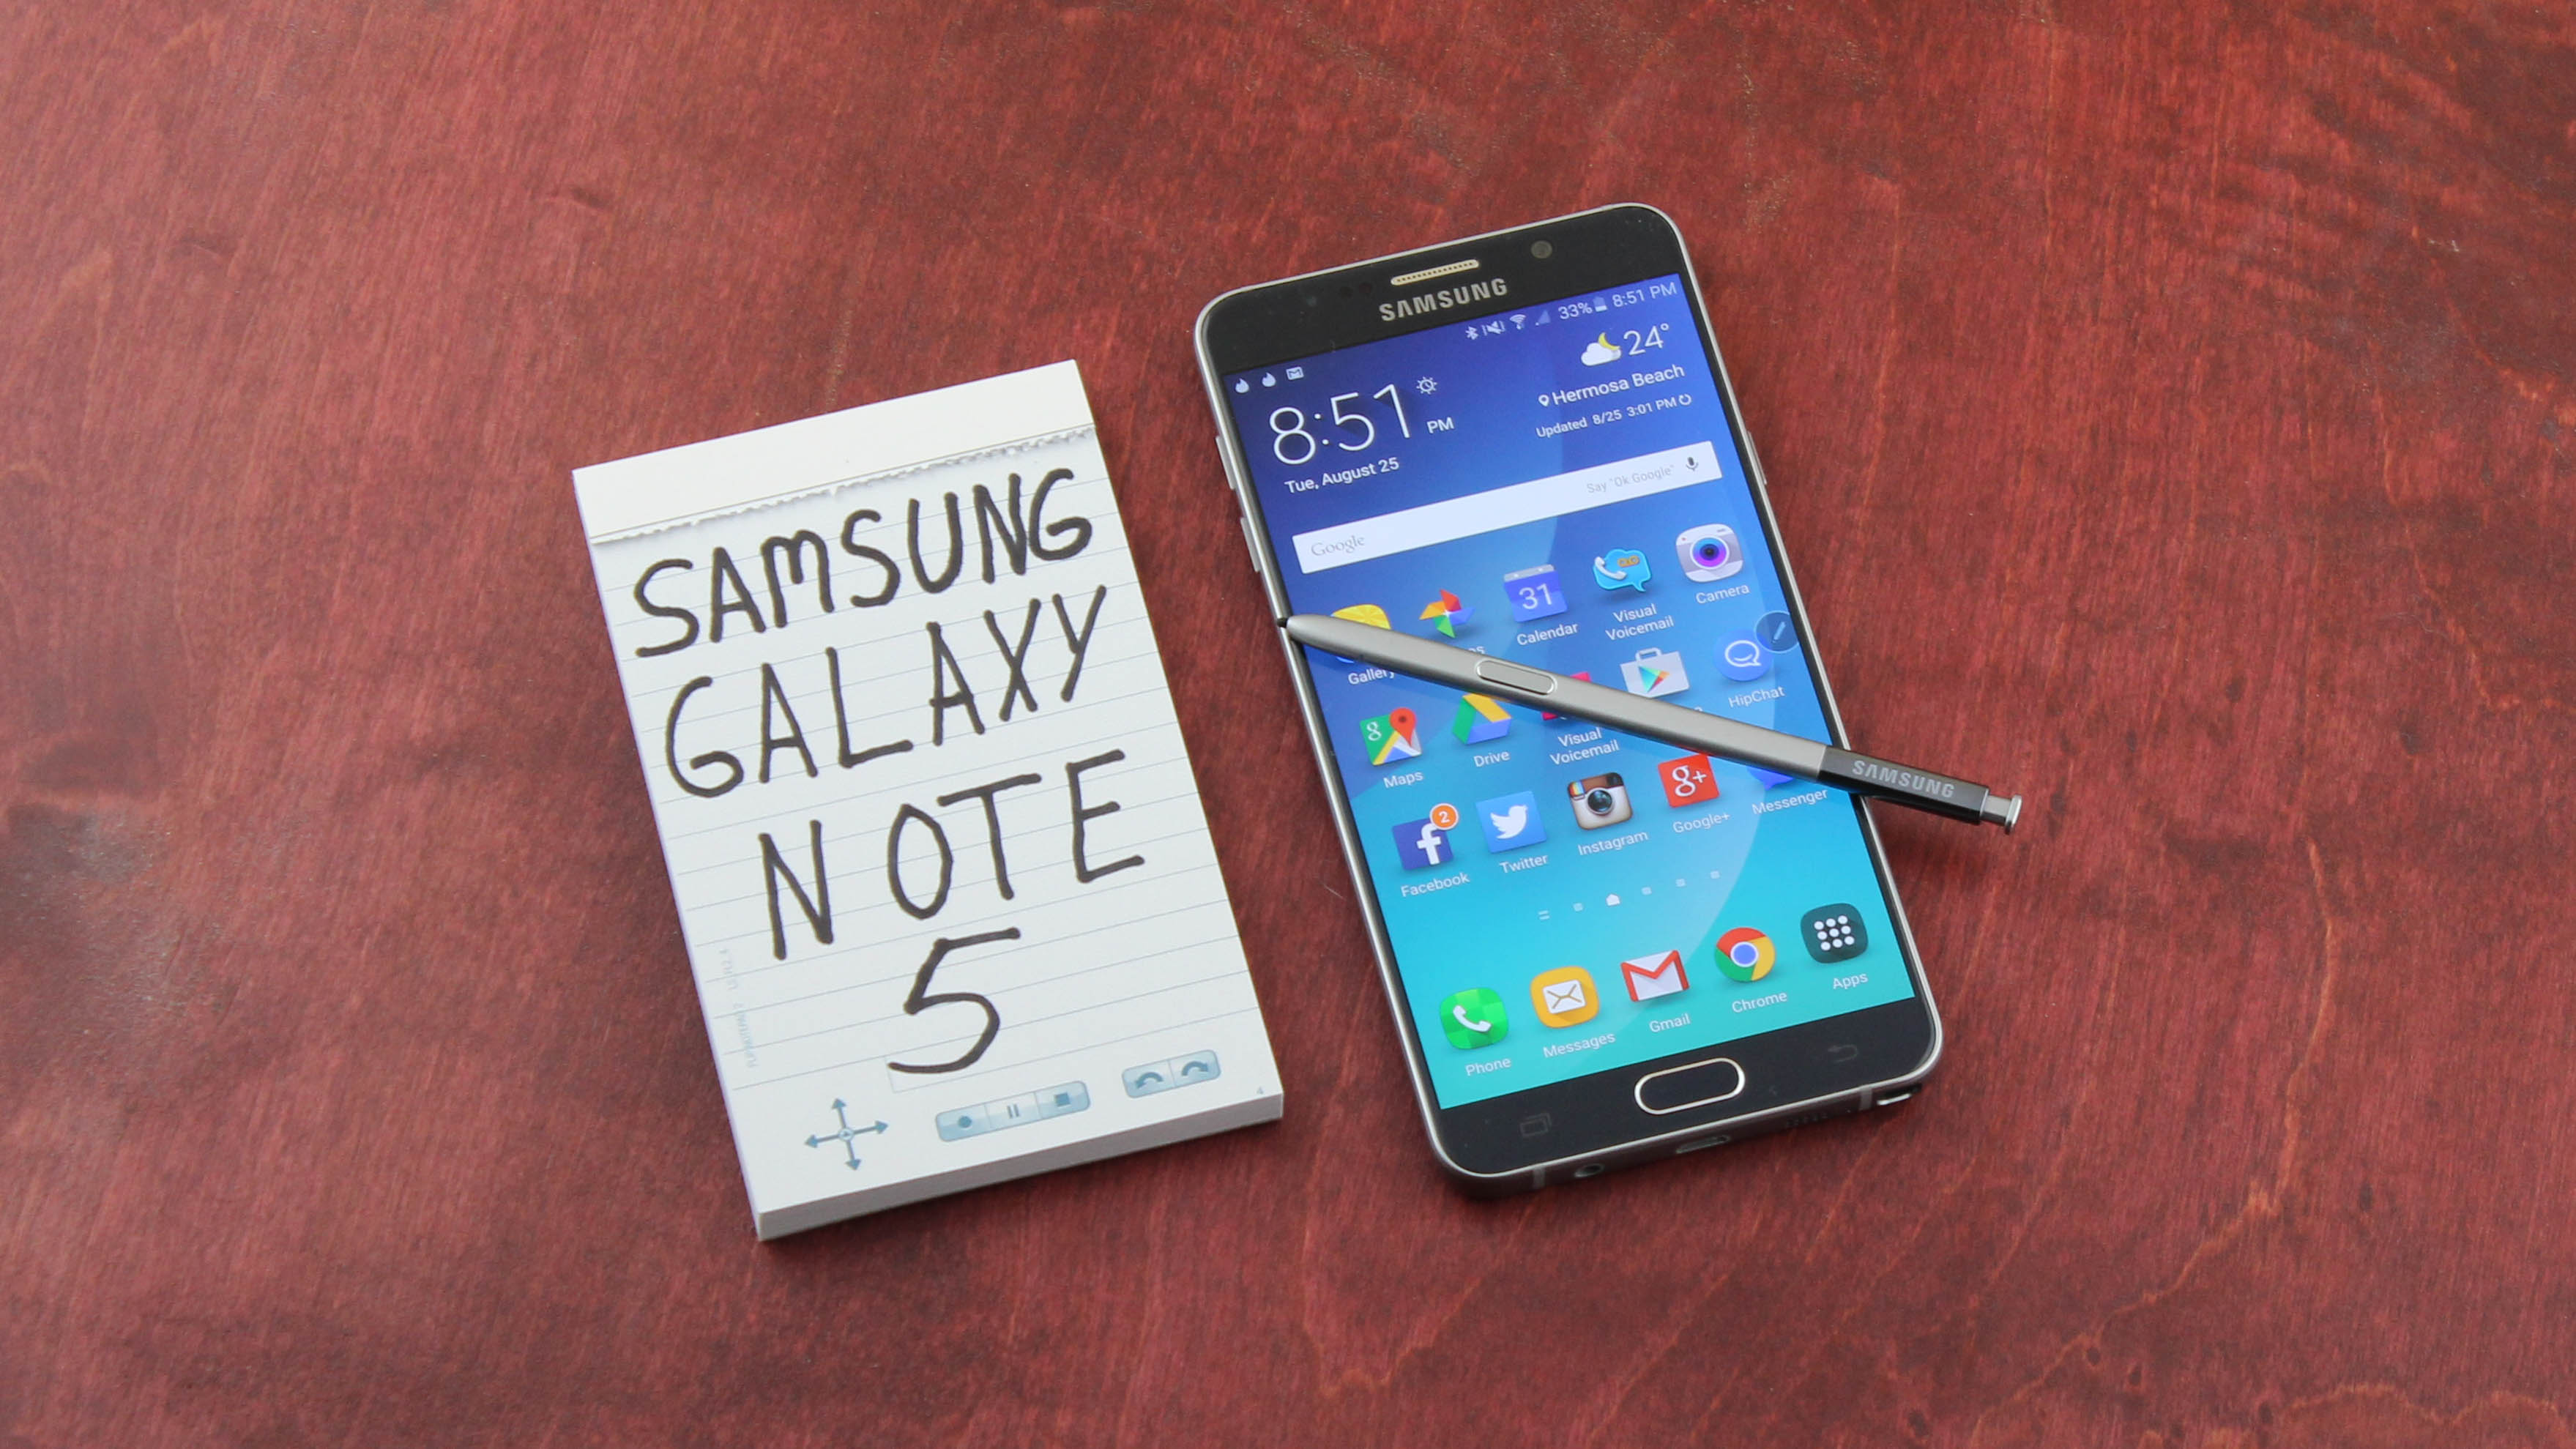 Gold platinum galaxy note 5 now available from t mobile android - Gold Platinum Galaxy Note 5 Now Available From T Mobile Android 26